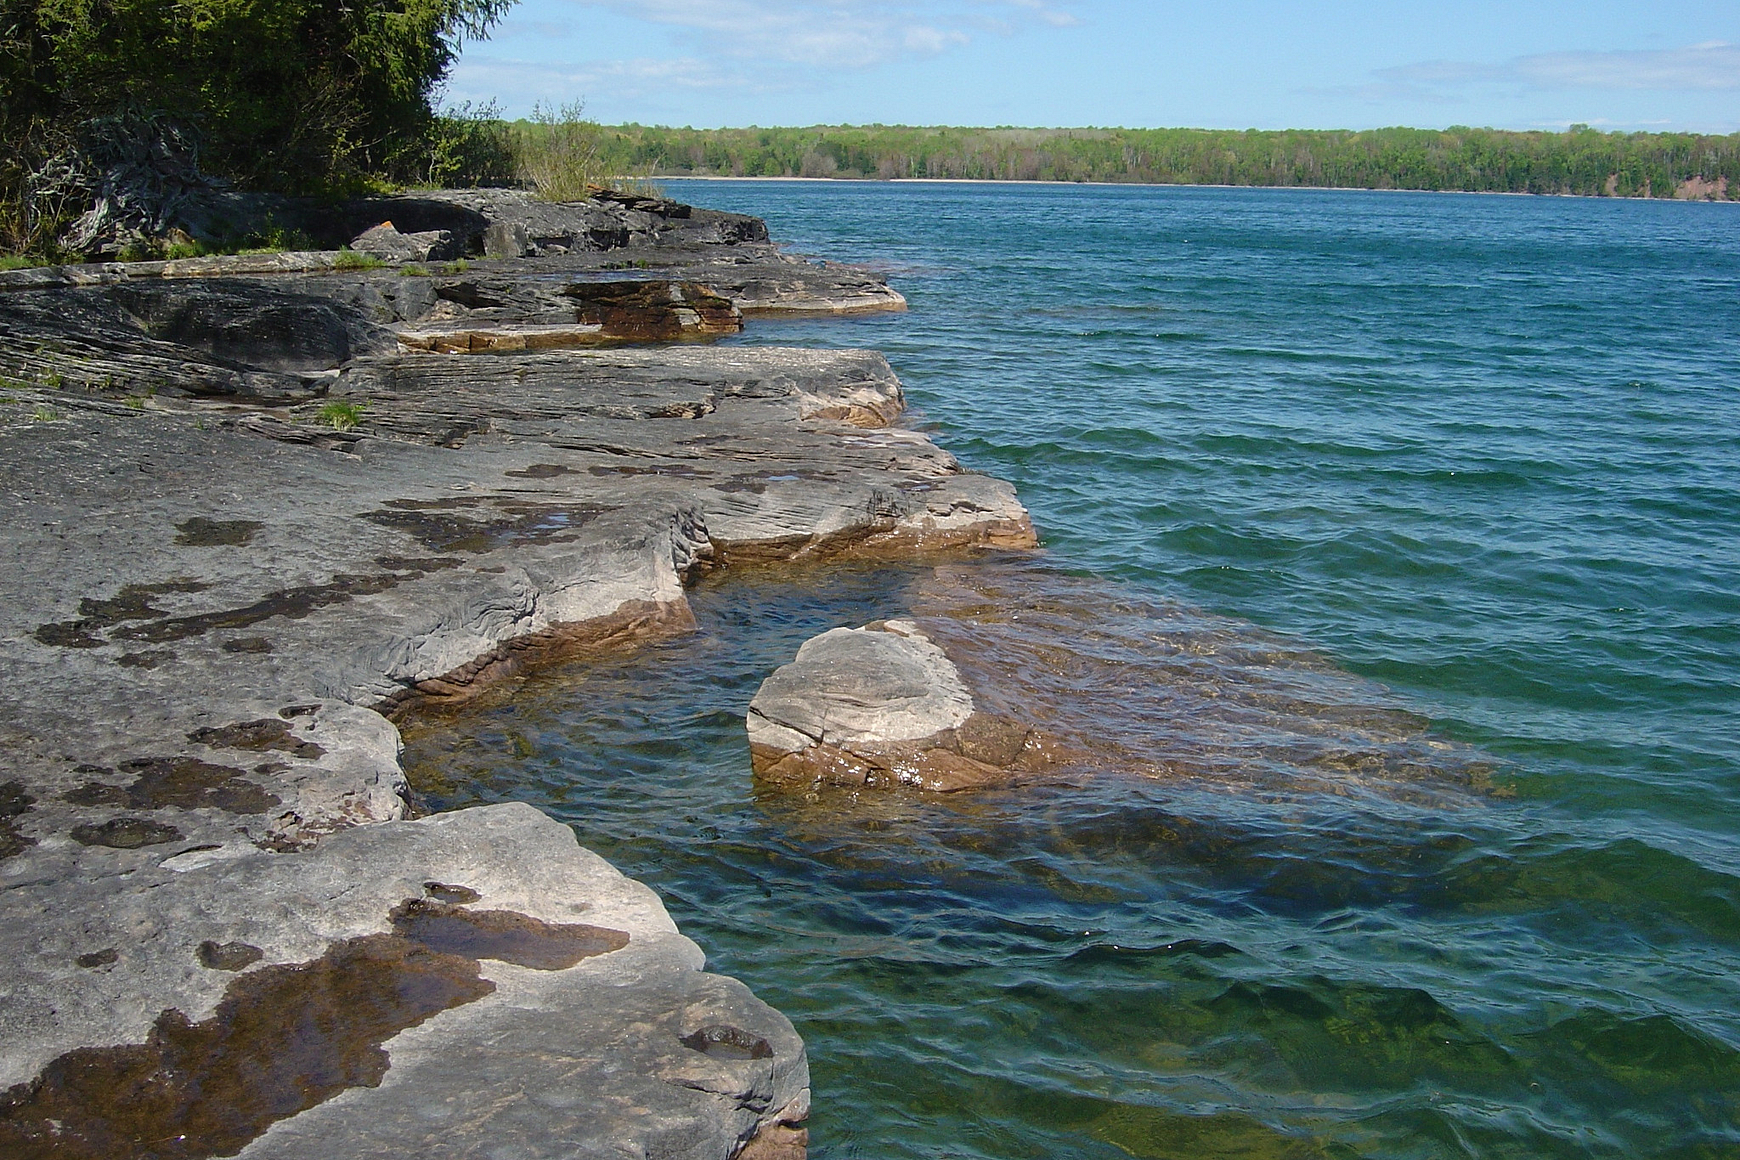 Rocky shoreline of Lake Superior on Stockton Island with blue water, trees and blue sky